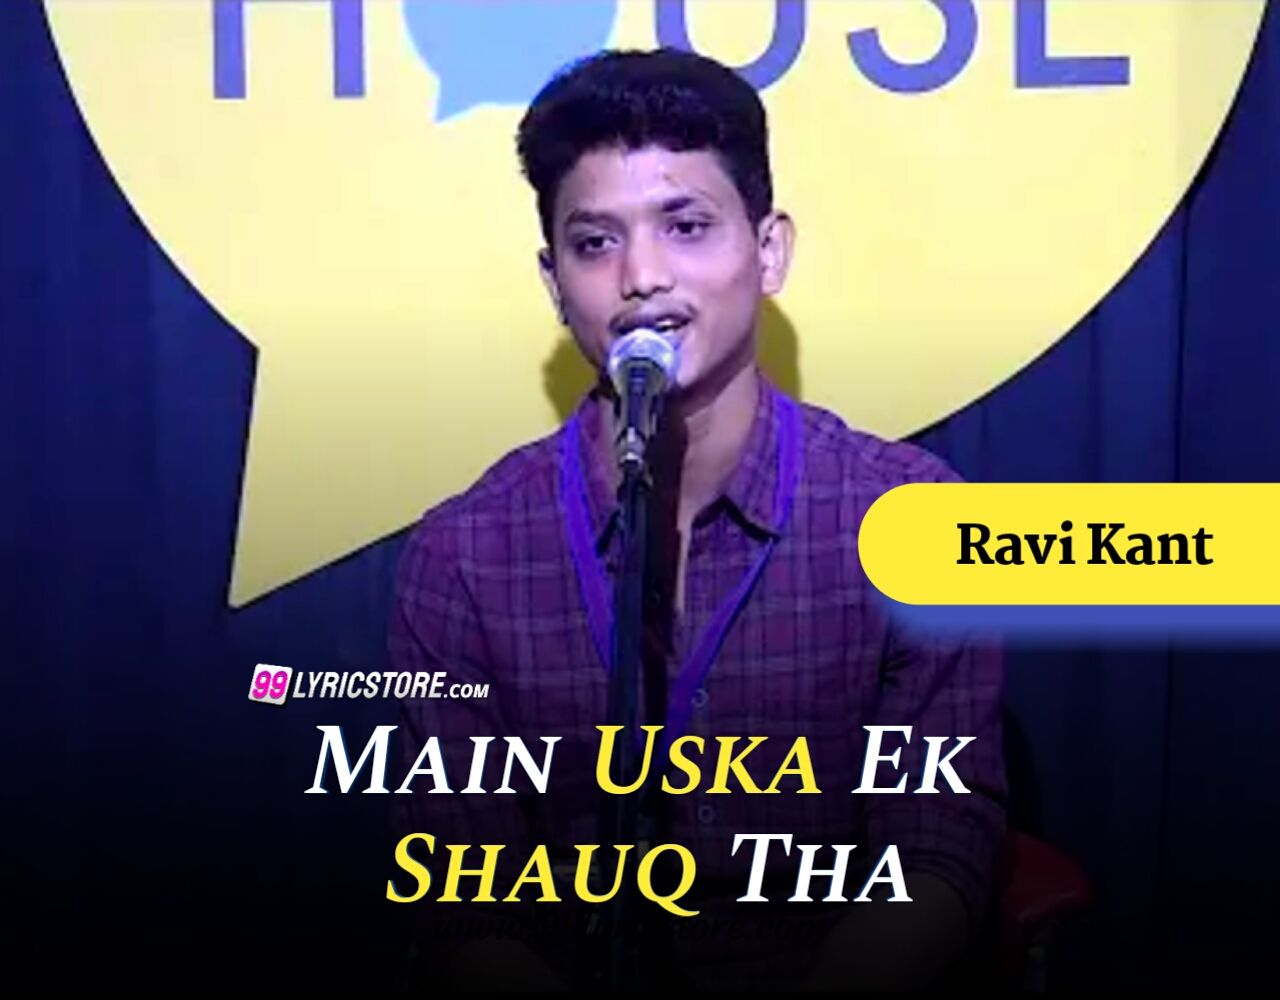 Main Uska Ek Shauq Tha Poetry has written and performed by Ravi Kant on The Social House's Plateform.